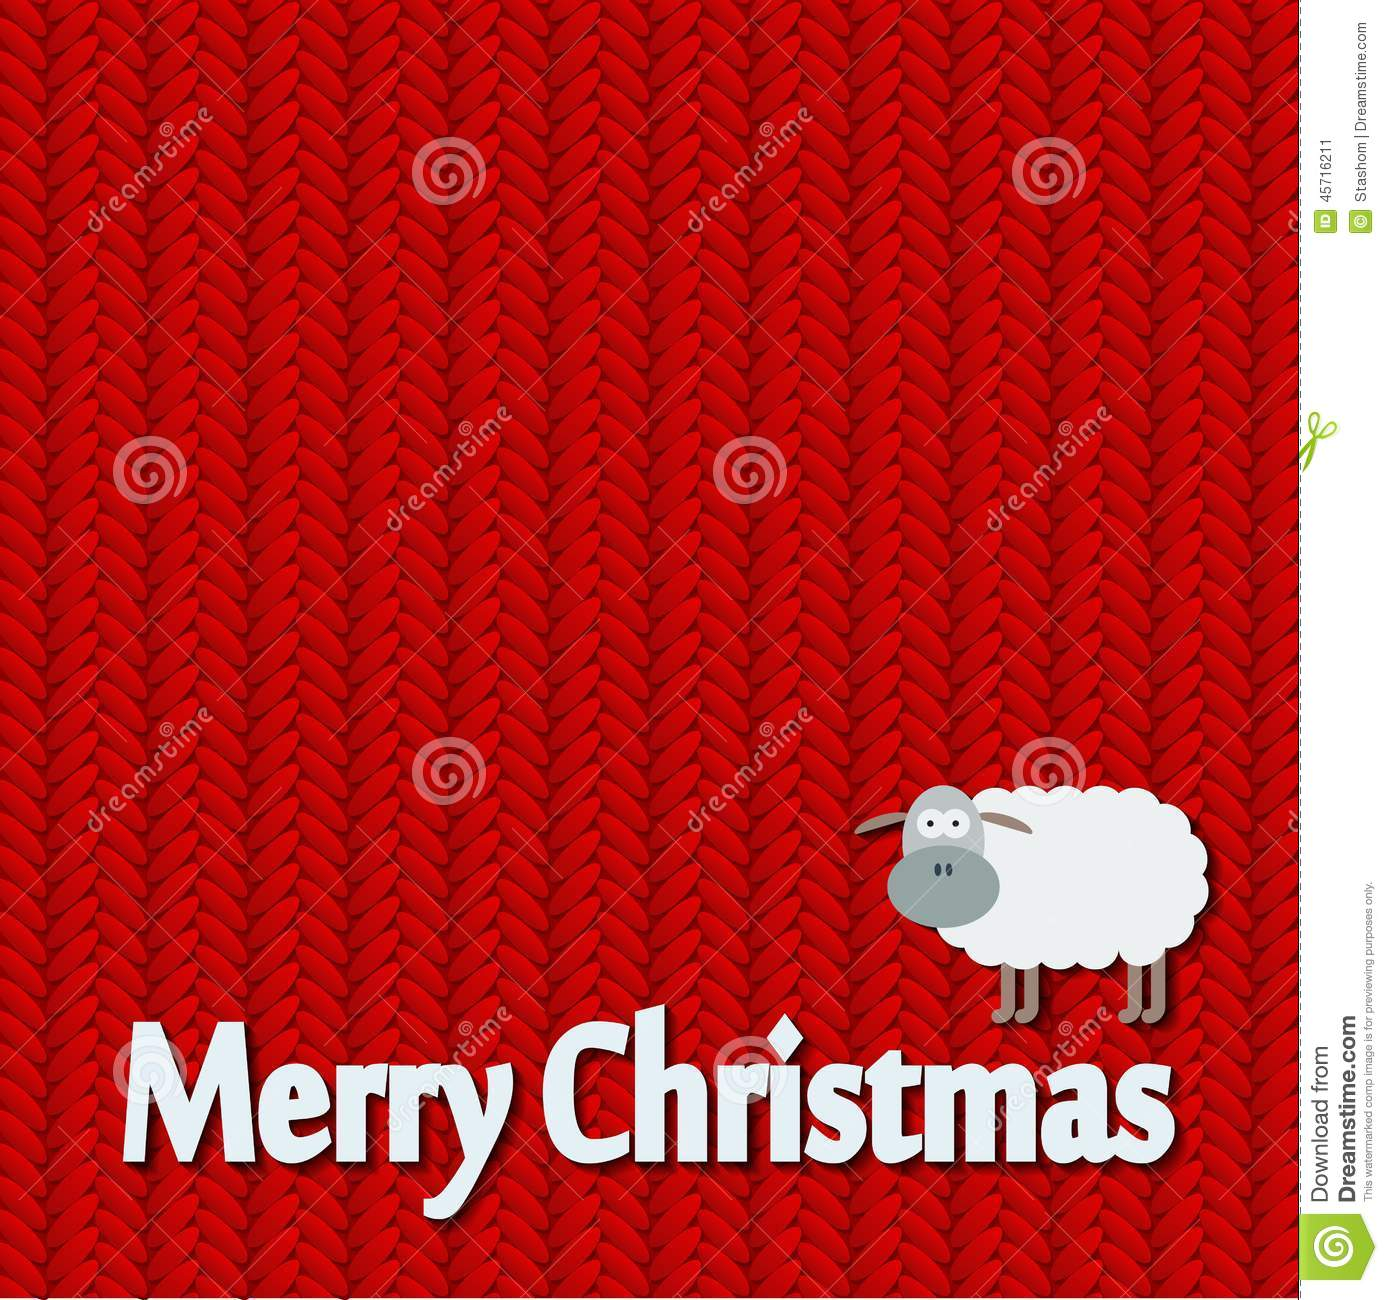 Knitting Patterns For Christmas Cards : Christmas Knitted Pattern Card With Funny Sheep. Stock Vector - Image: 45716211